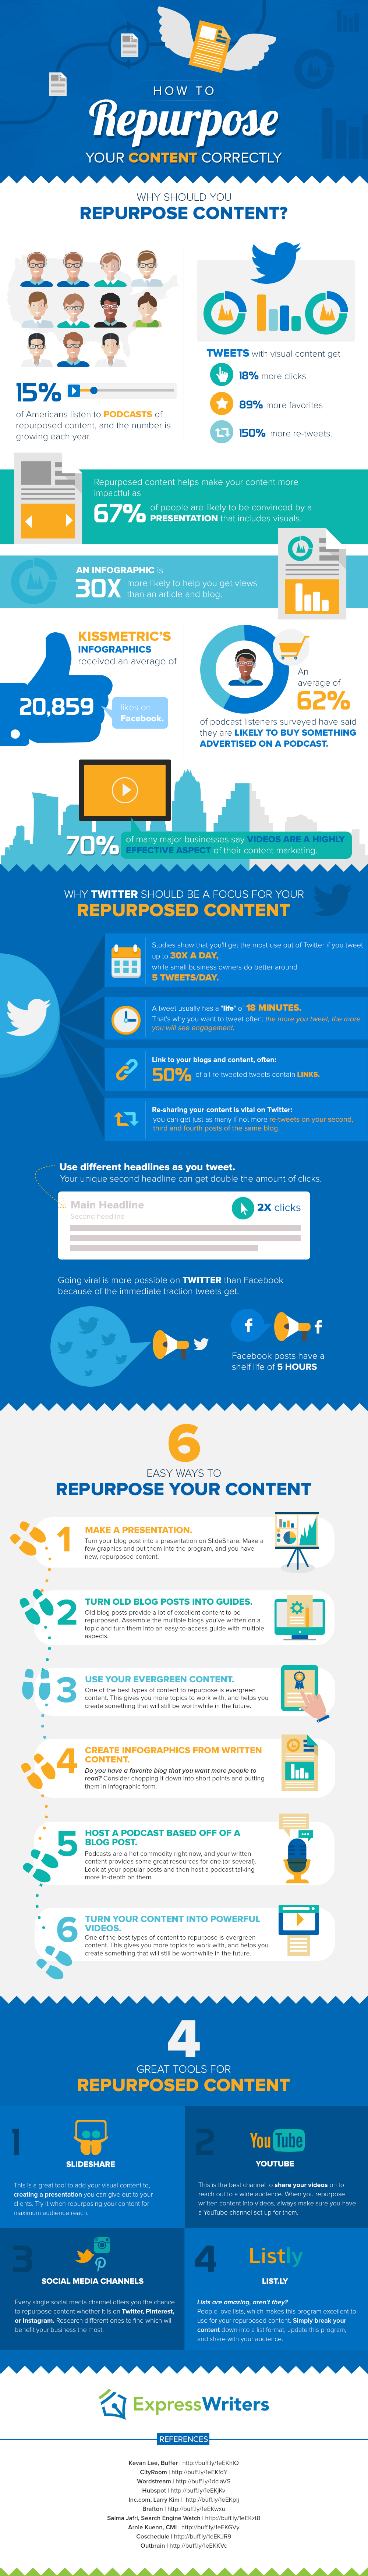 How To Repurpose Your Content Correctly - Infographic